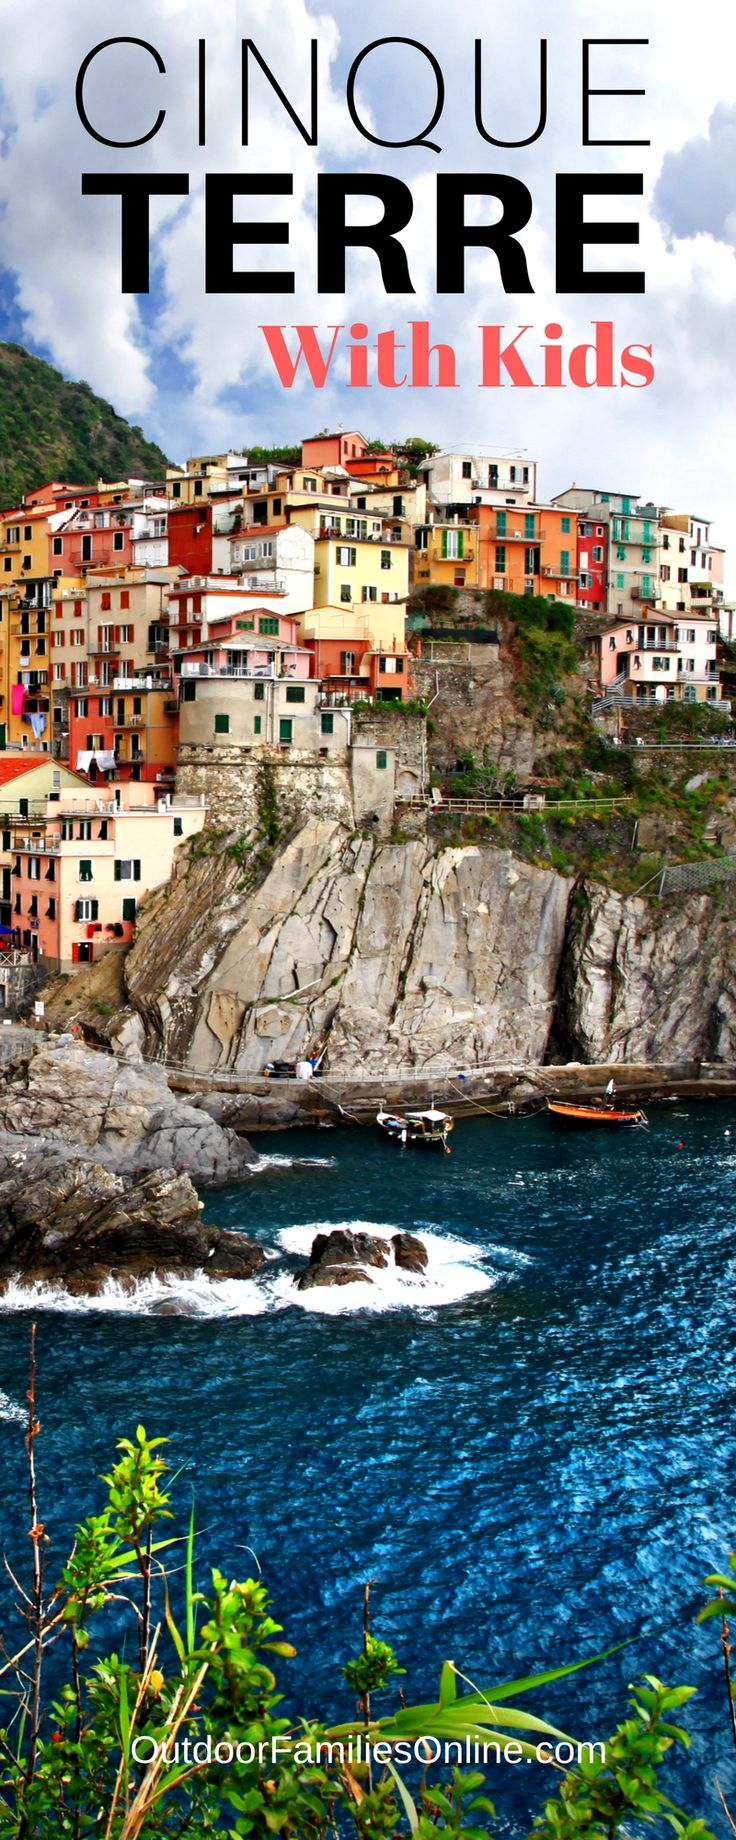 Hiking Italy's Cinque Terre is a delightful way to introduce kids to the region's history while staying active and viewing beautiful scenery.